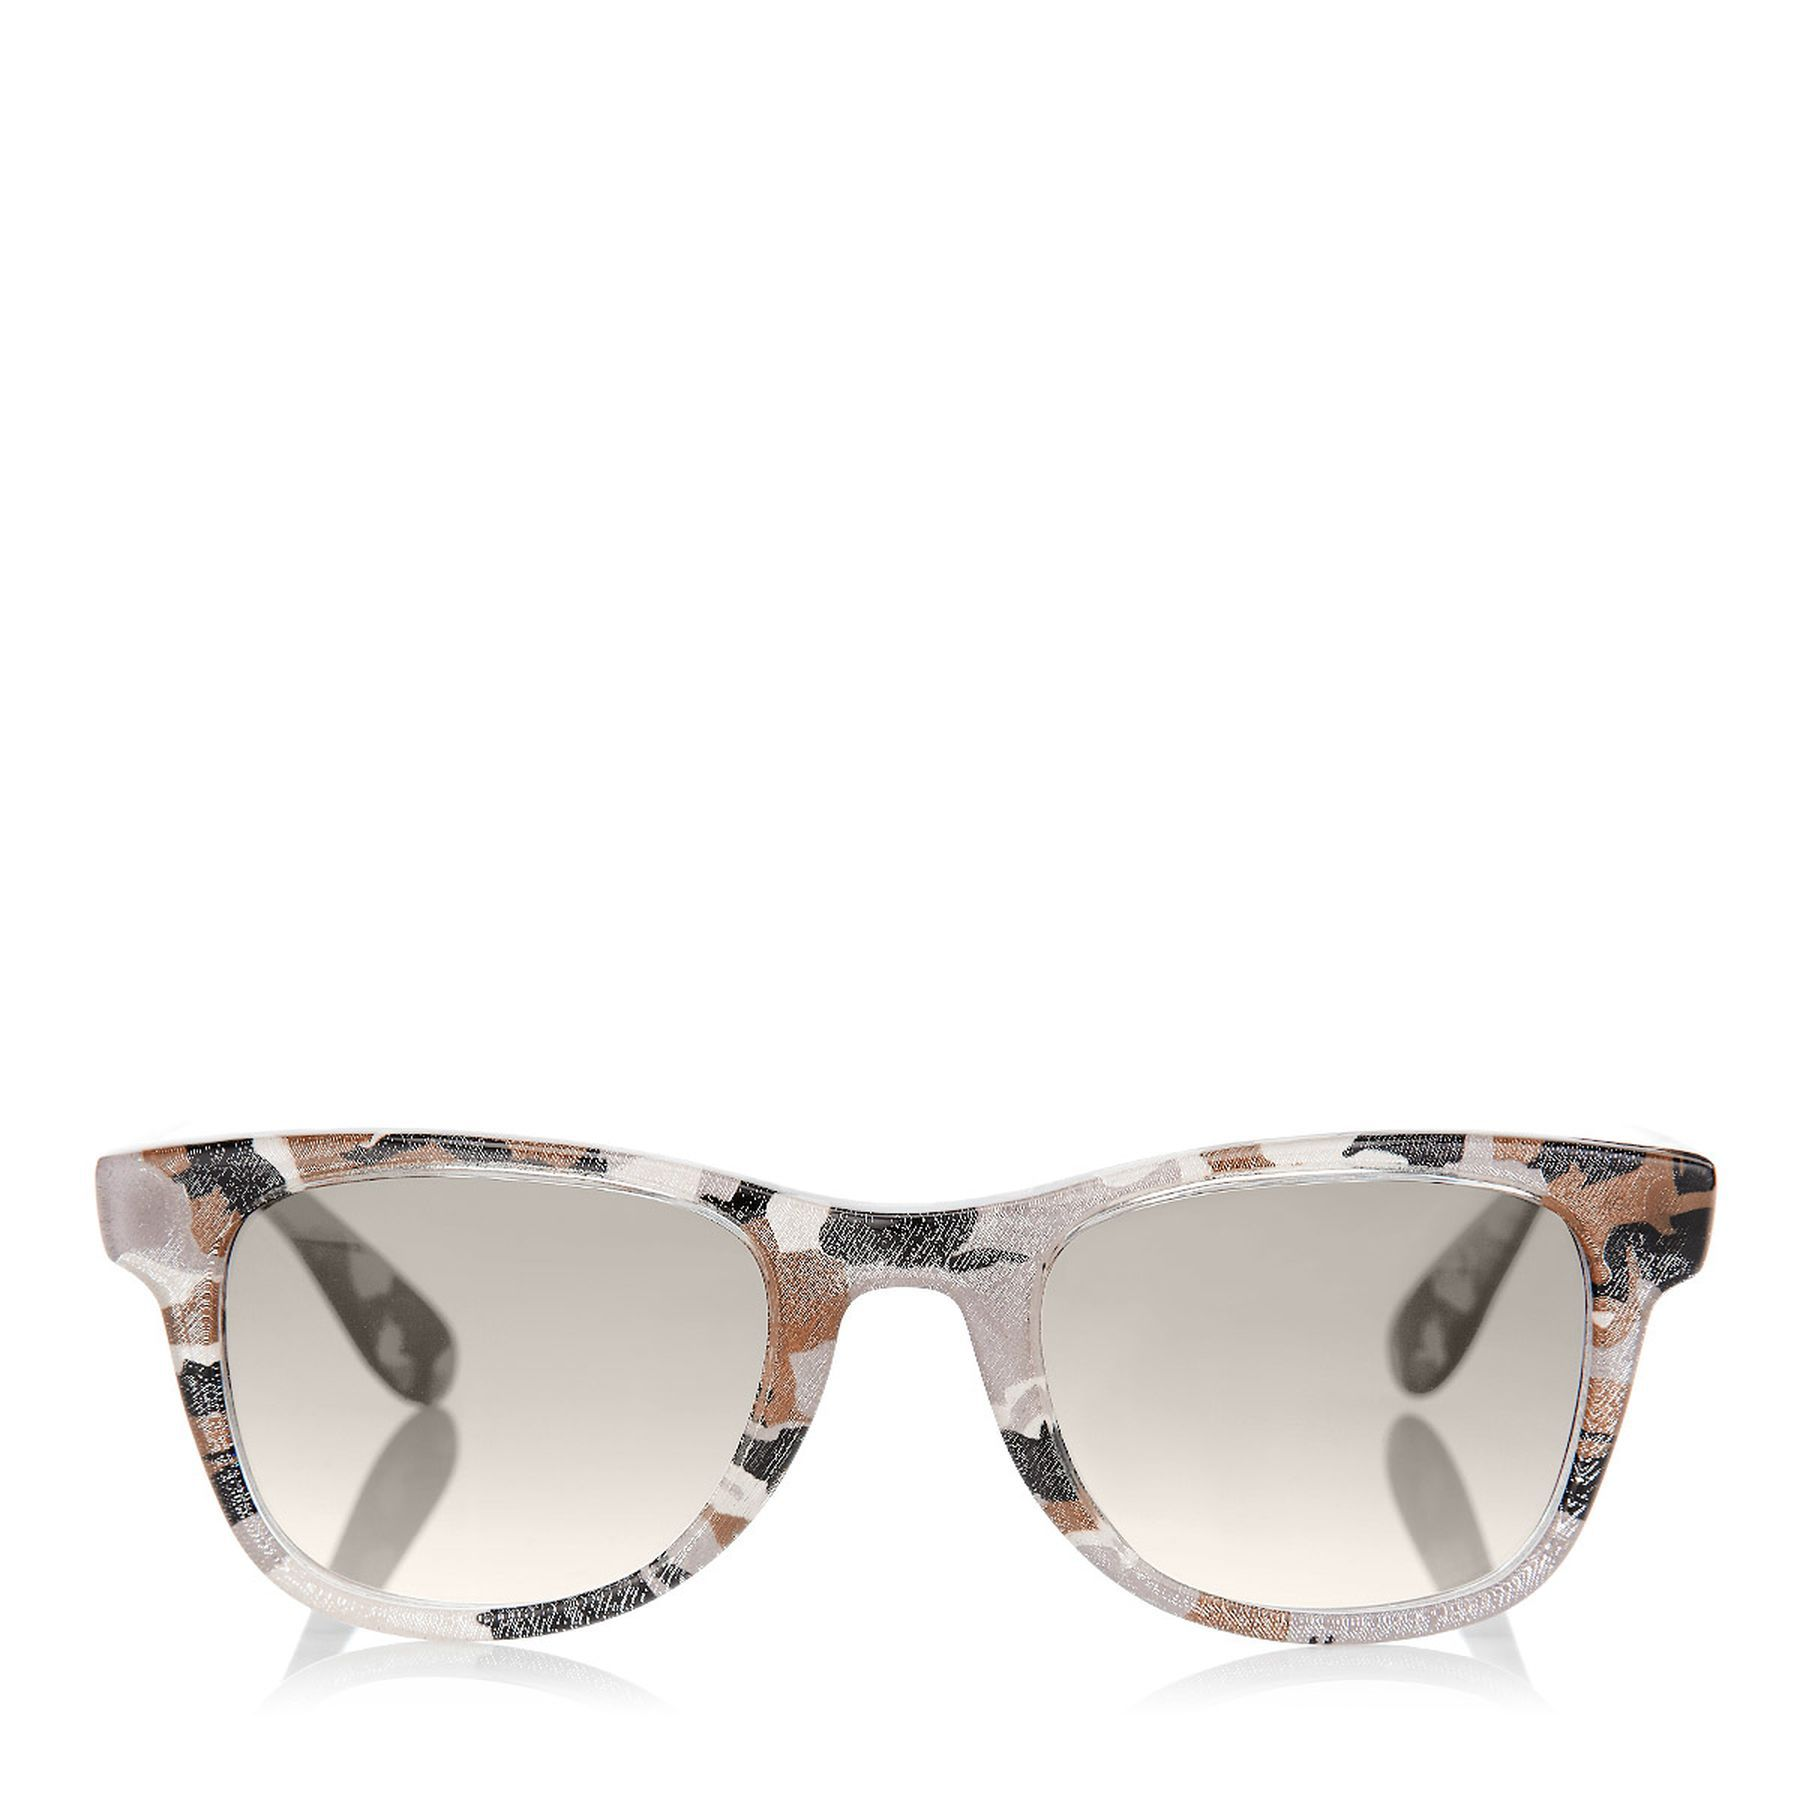 2586e6342967 Sand Camouflage Men s Carrera Sunglasses